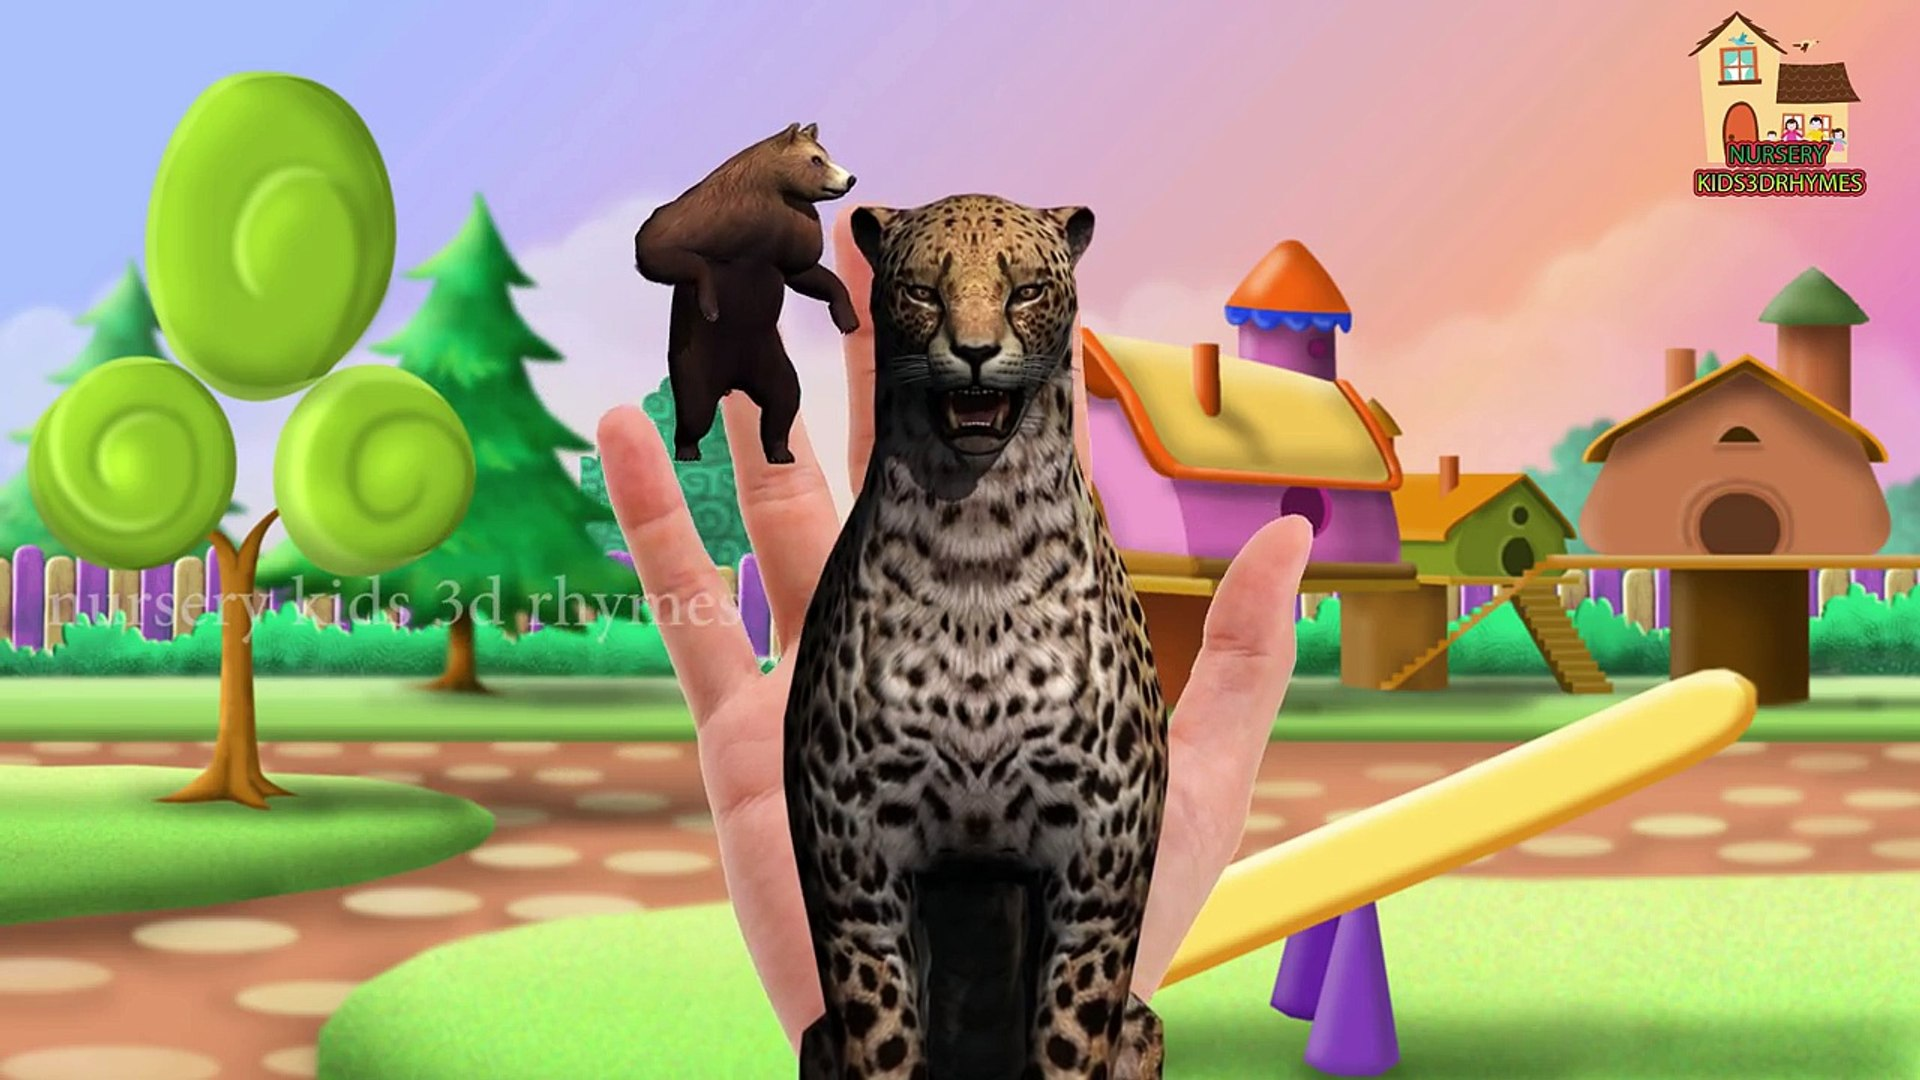 Animated Cheetah Wallpaper animals finger family 3d rhymes for kids( lion,tiger,cheetah)